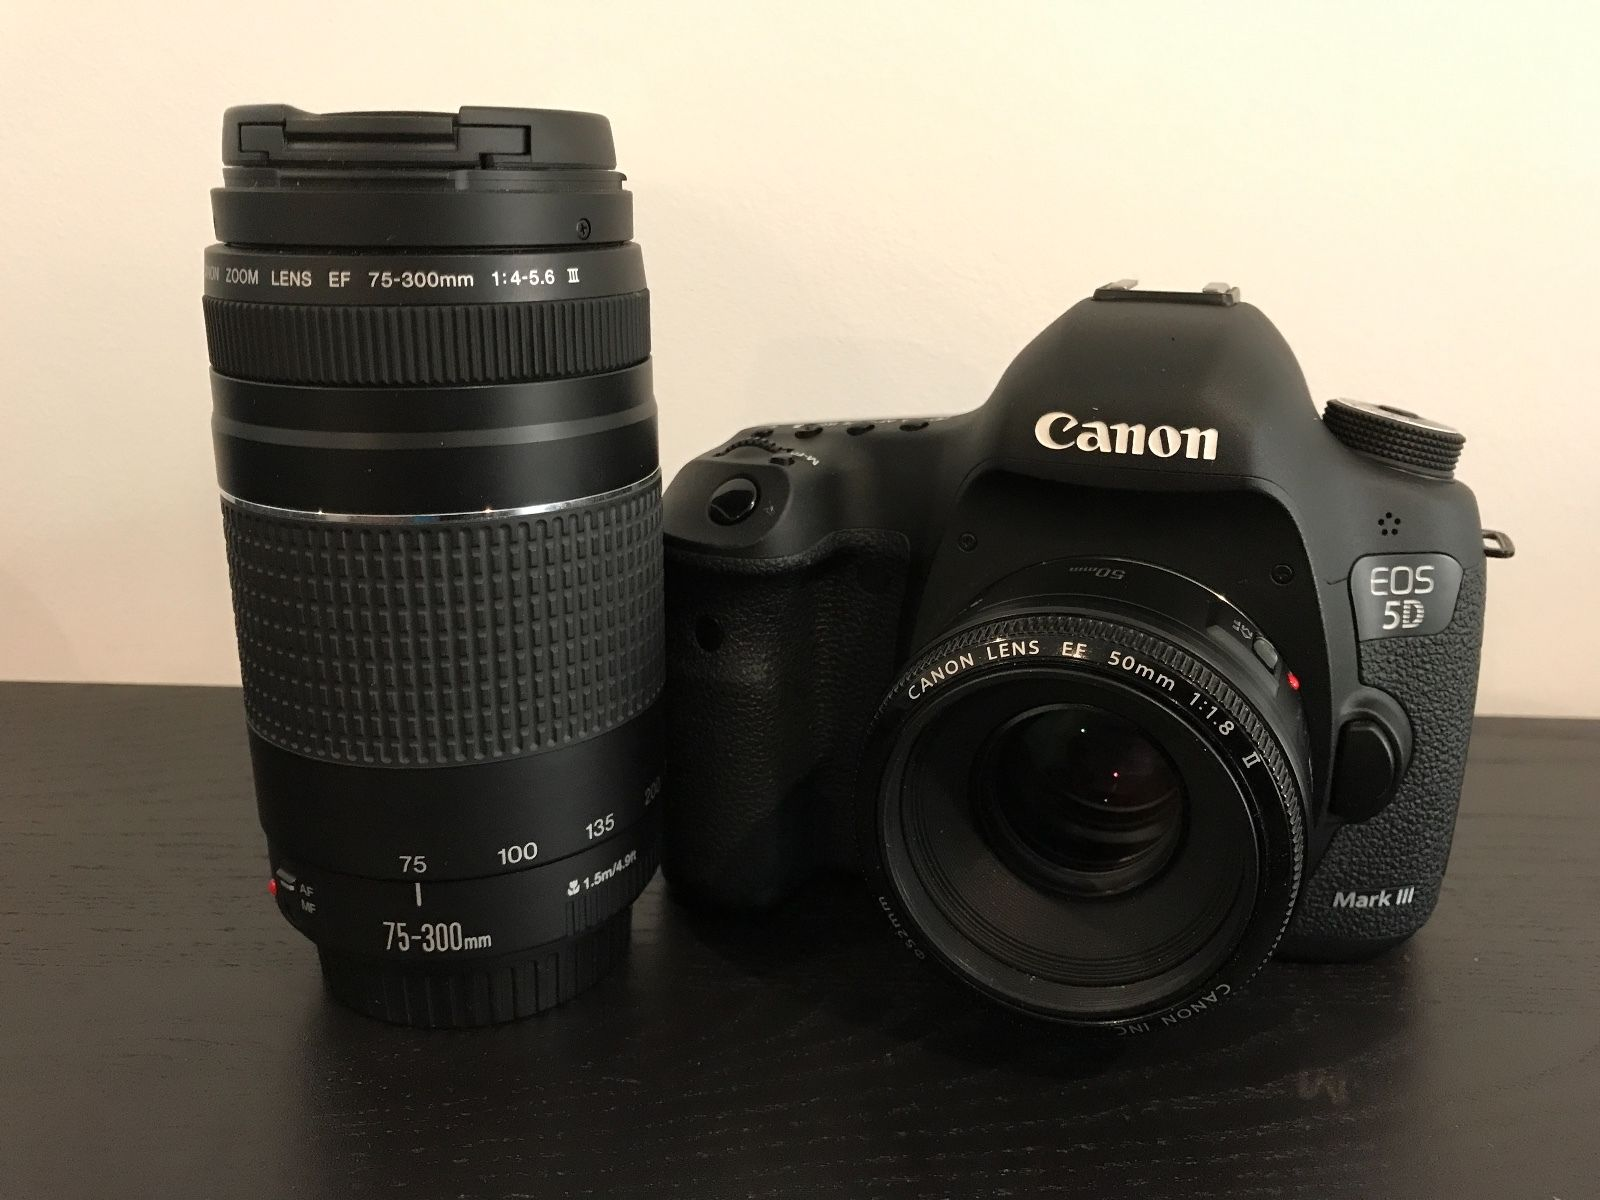 Canon EOS 5d Mark III 22.3 MP SLR Digital Camera-Black whatapps :: +16106346111